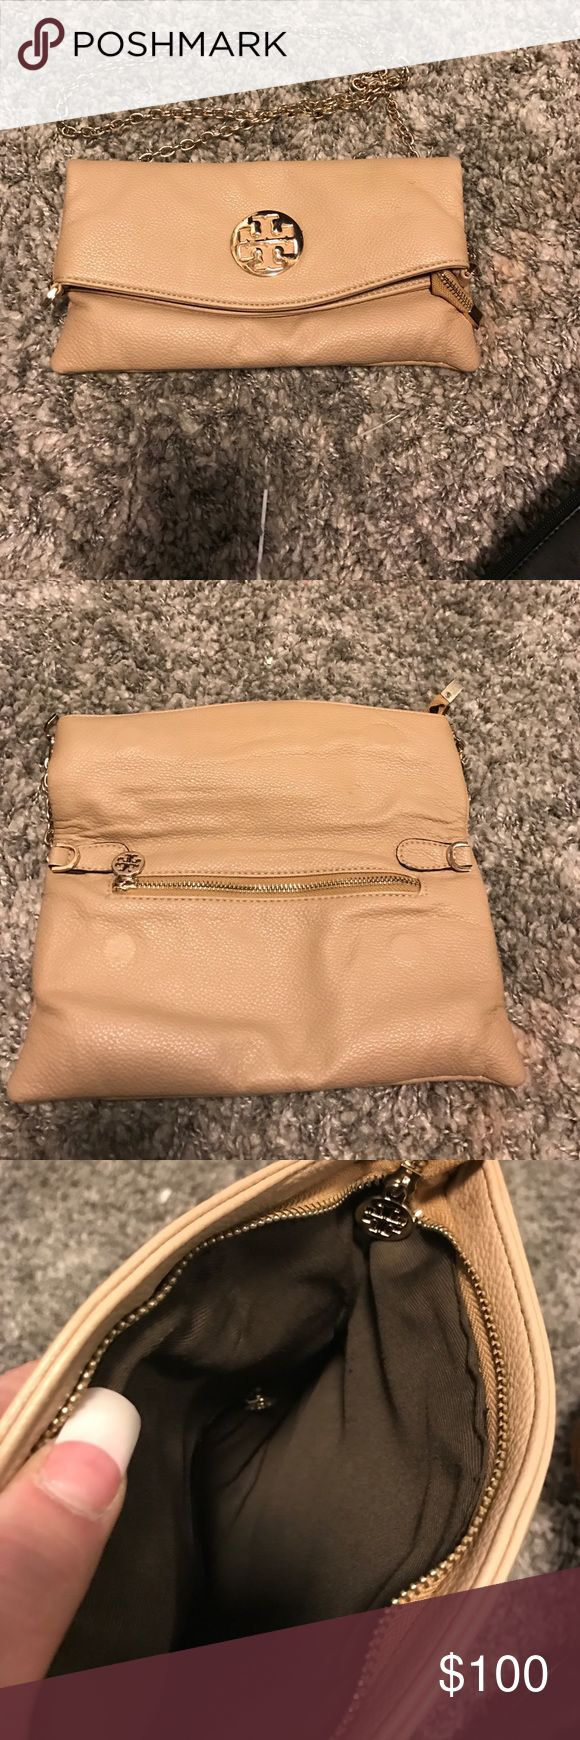 Tory Burch beige clutch Tory Burch beige clutch Tory Burch Bags Clutches & Wristlets